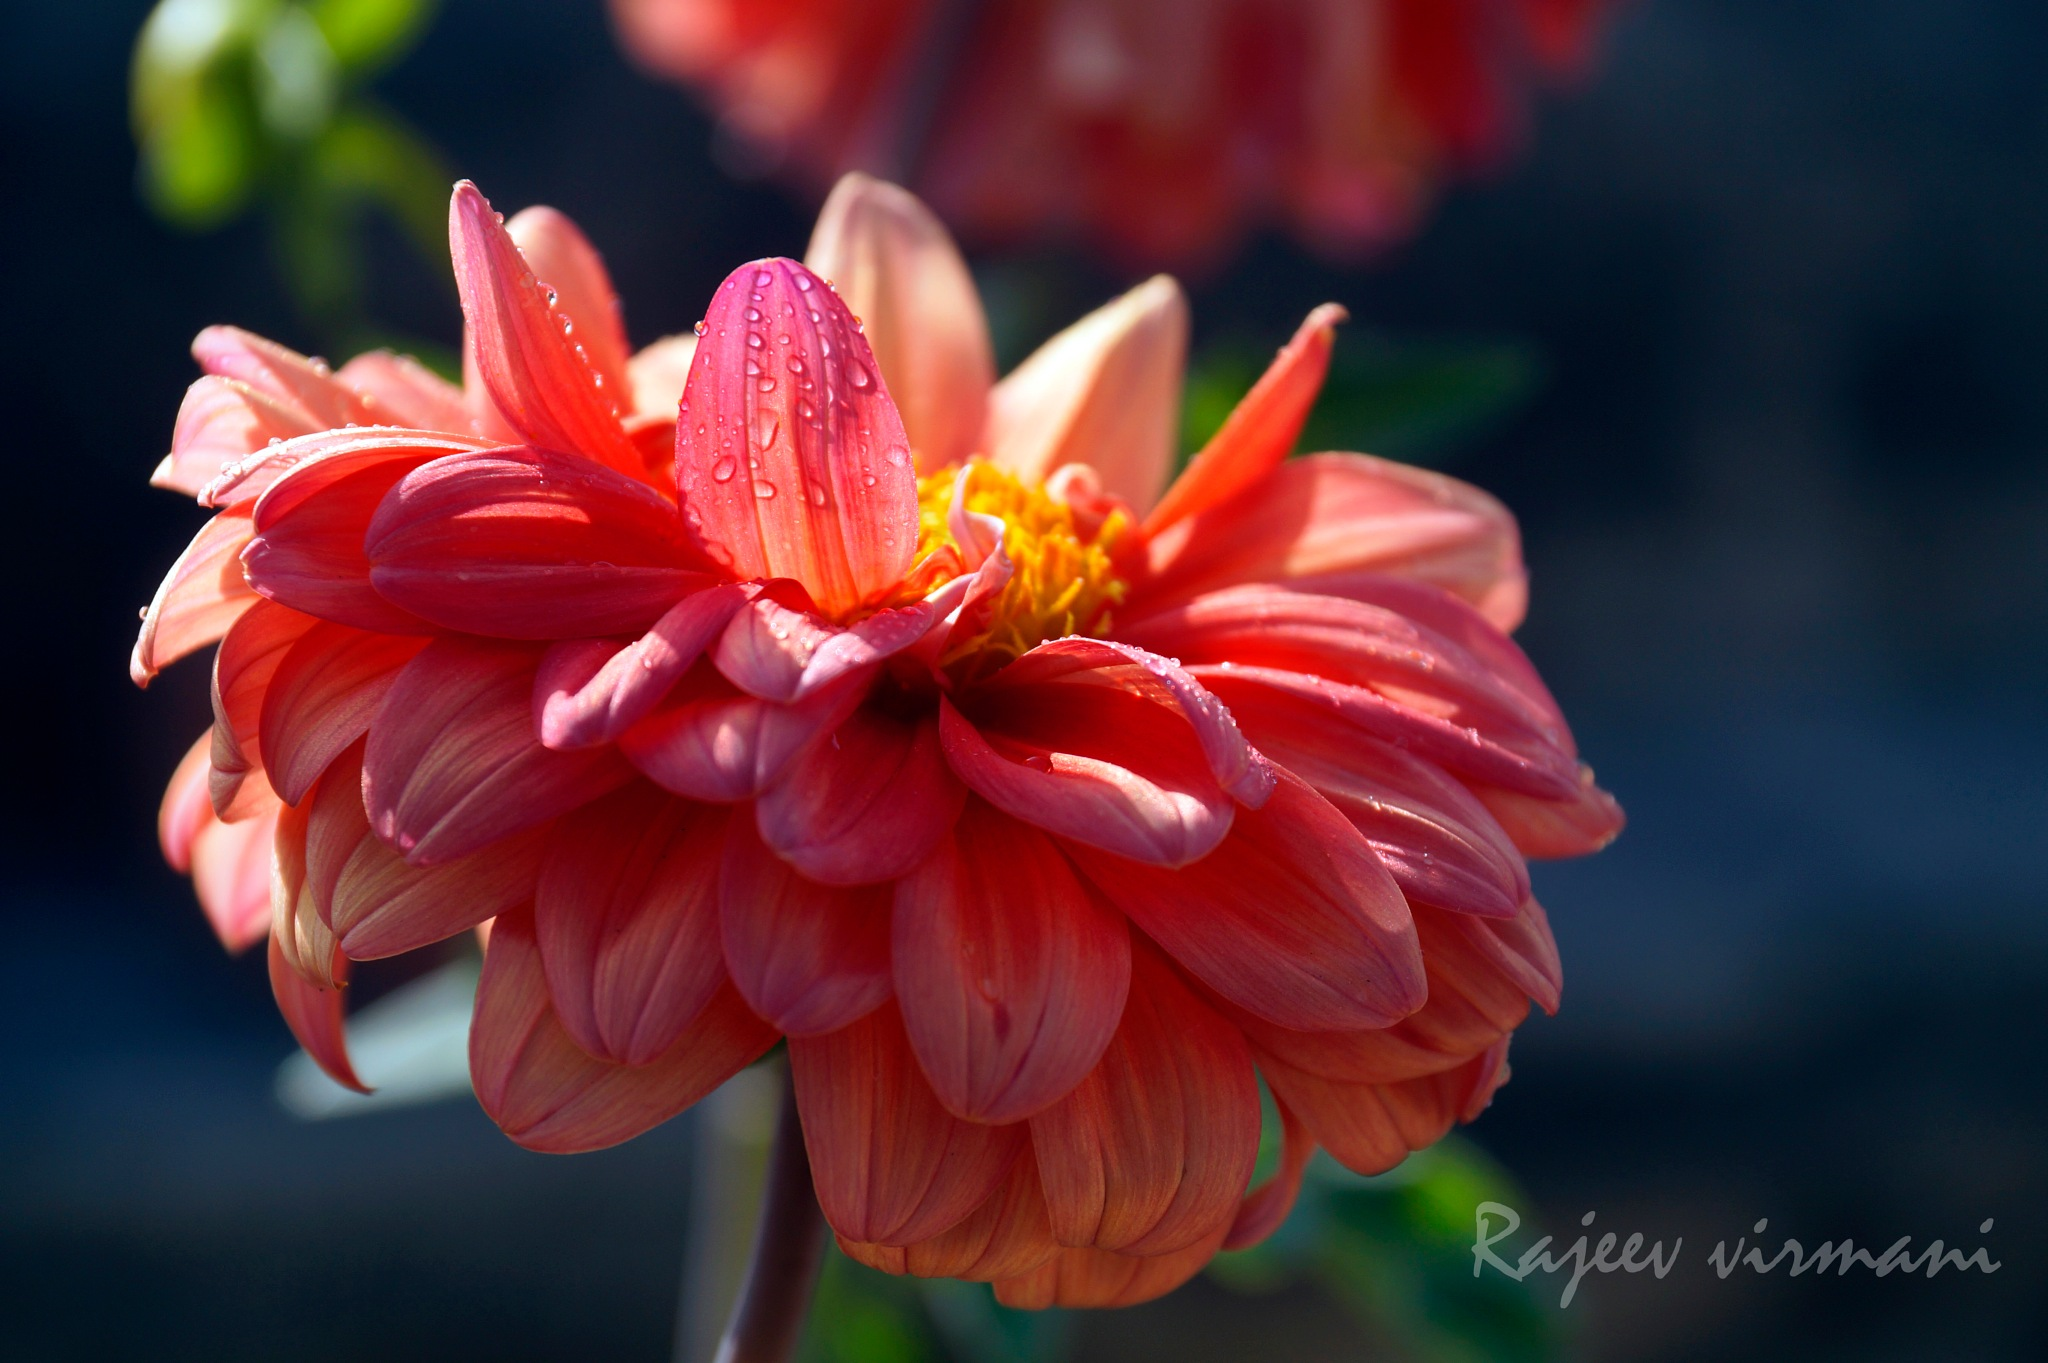 Dahlia by Rajeev